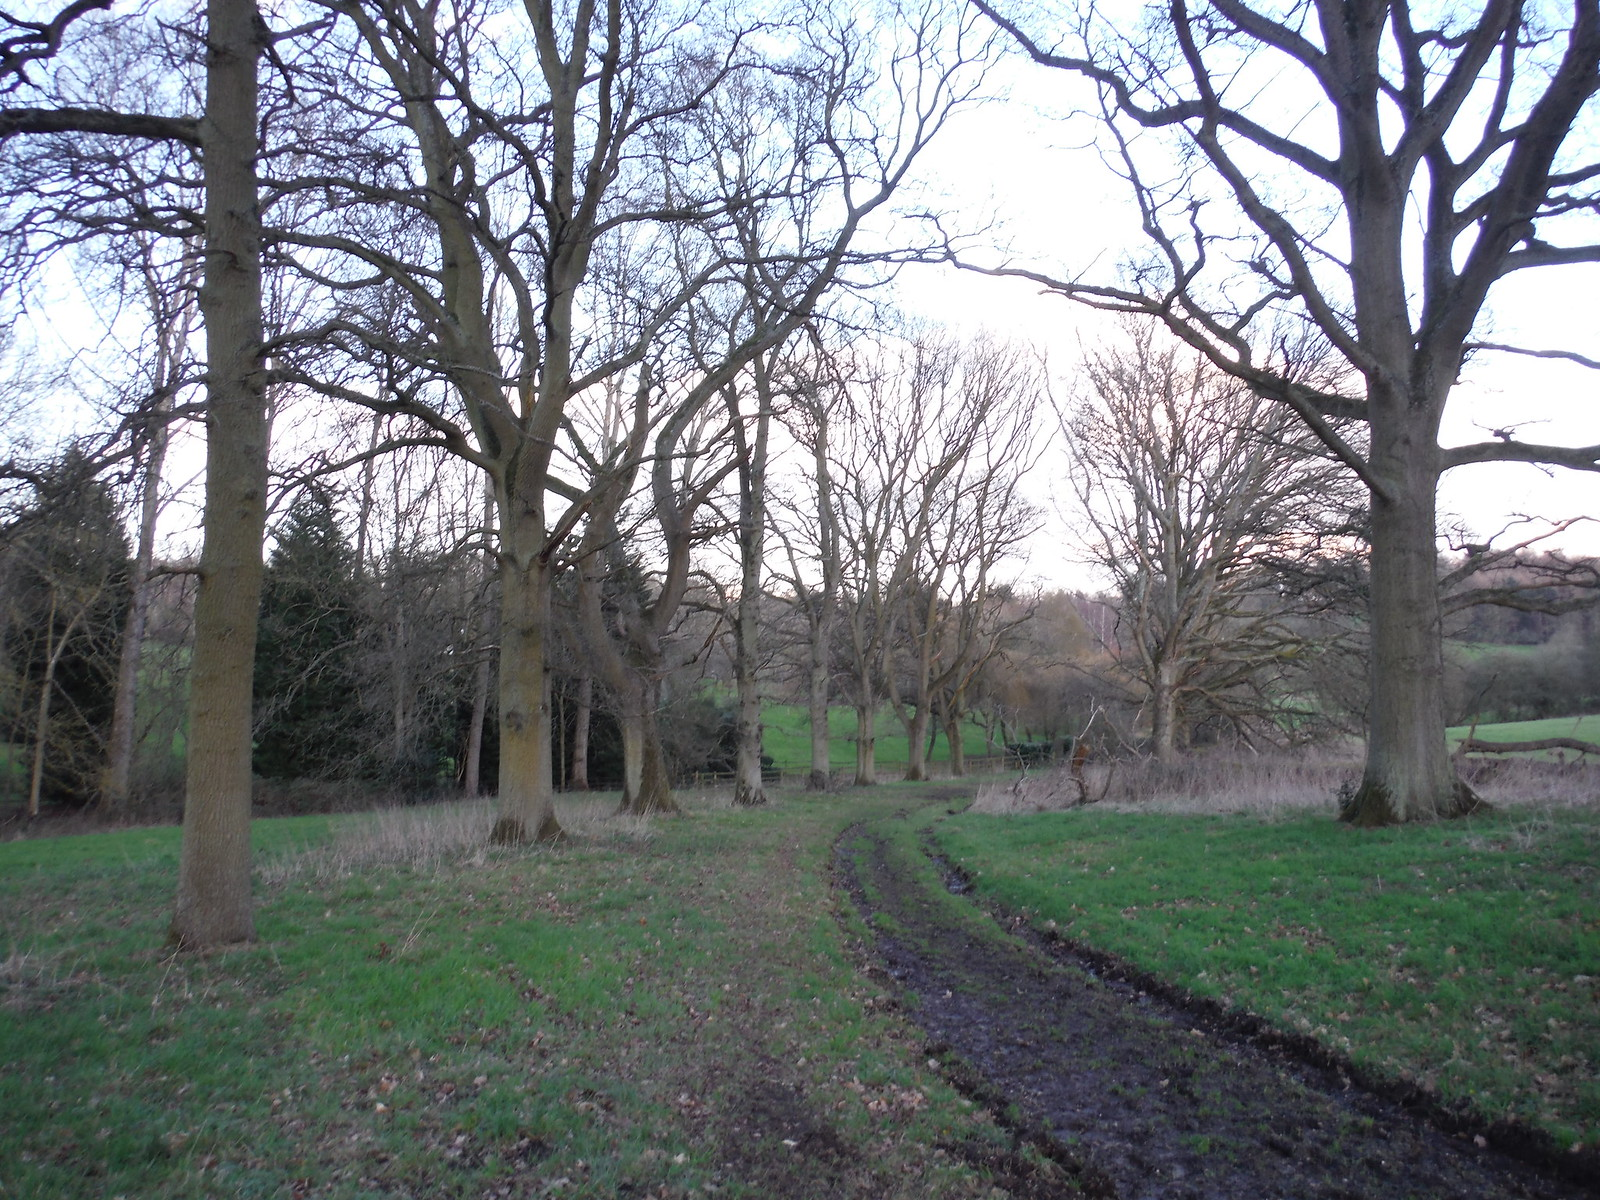 Tree-lined track, Midgham Park SWC Walk 117 Aldermaston to Woolhampton (via Stanford Dingley)